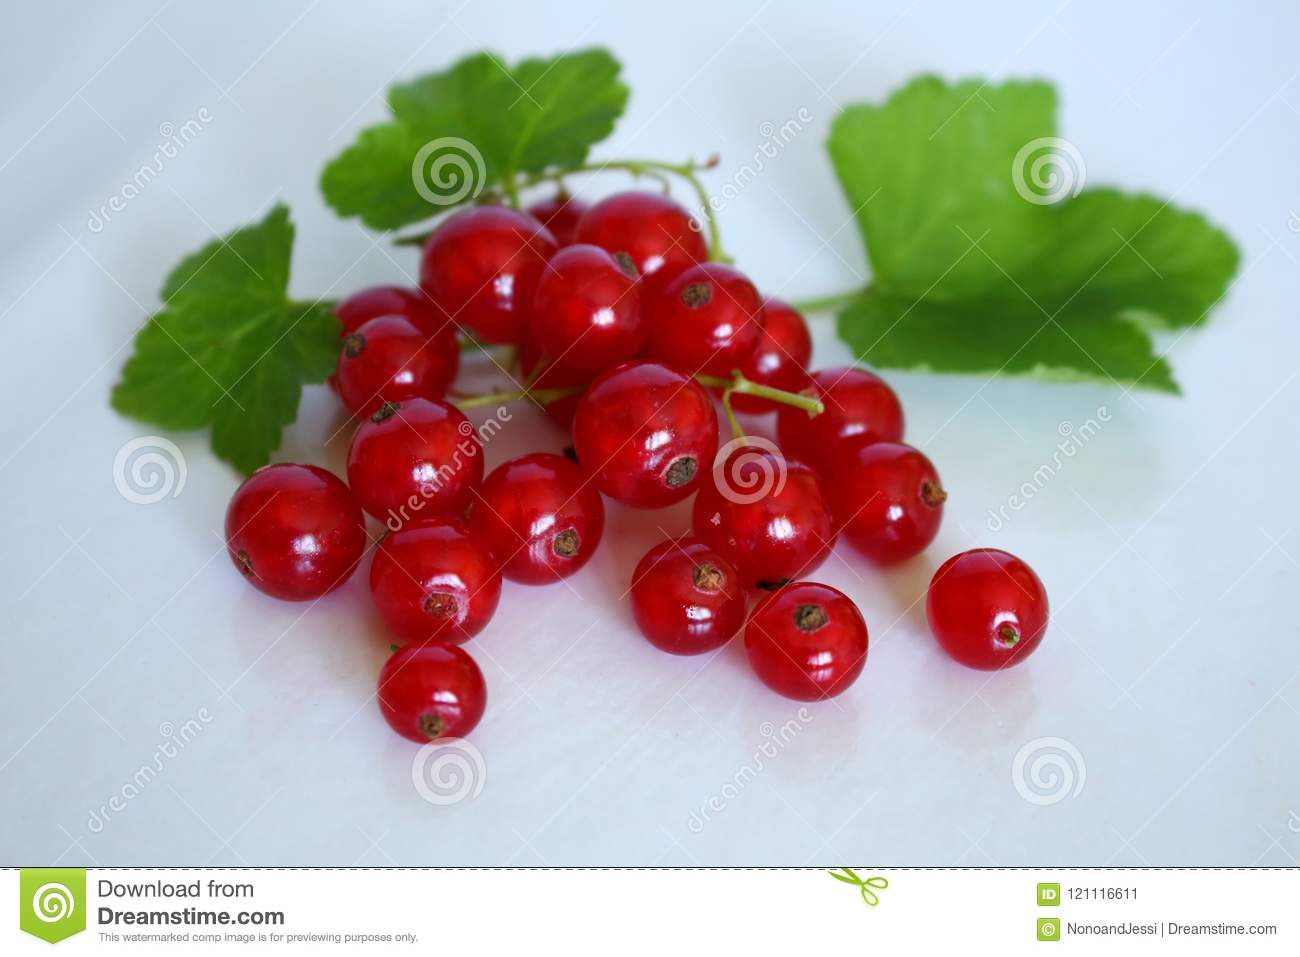 Bright red bunch of red currants and appetizing with its green leaves on white studio background